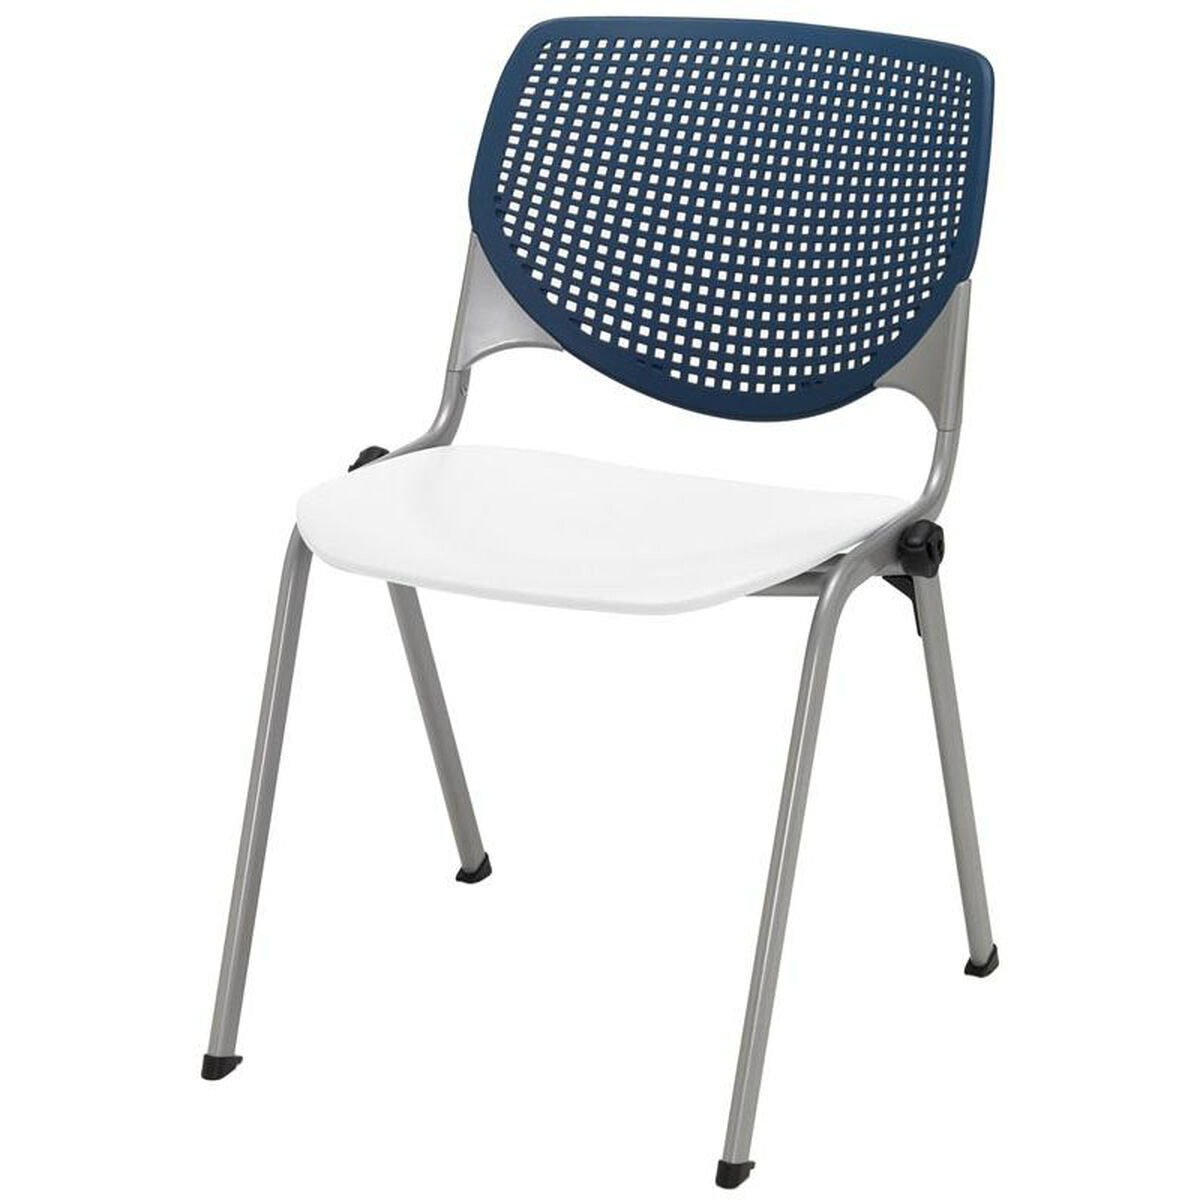 kool furniture. Our 2300 KOOL Series Stacking Poly Armless Chair With Navy Perforated  Back And White Seat Is Kool Furniture